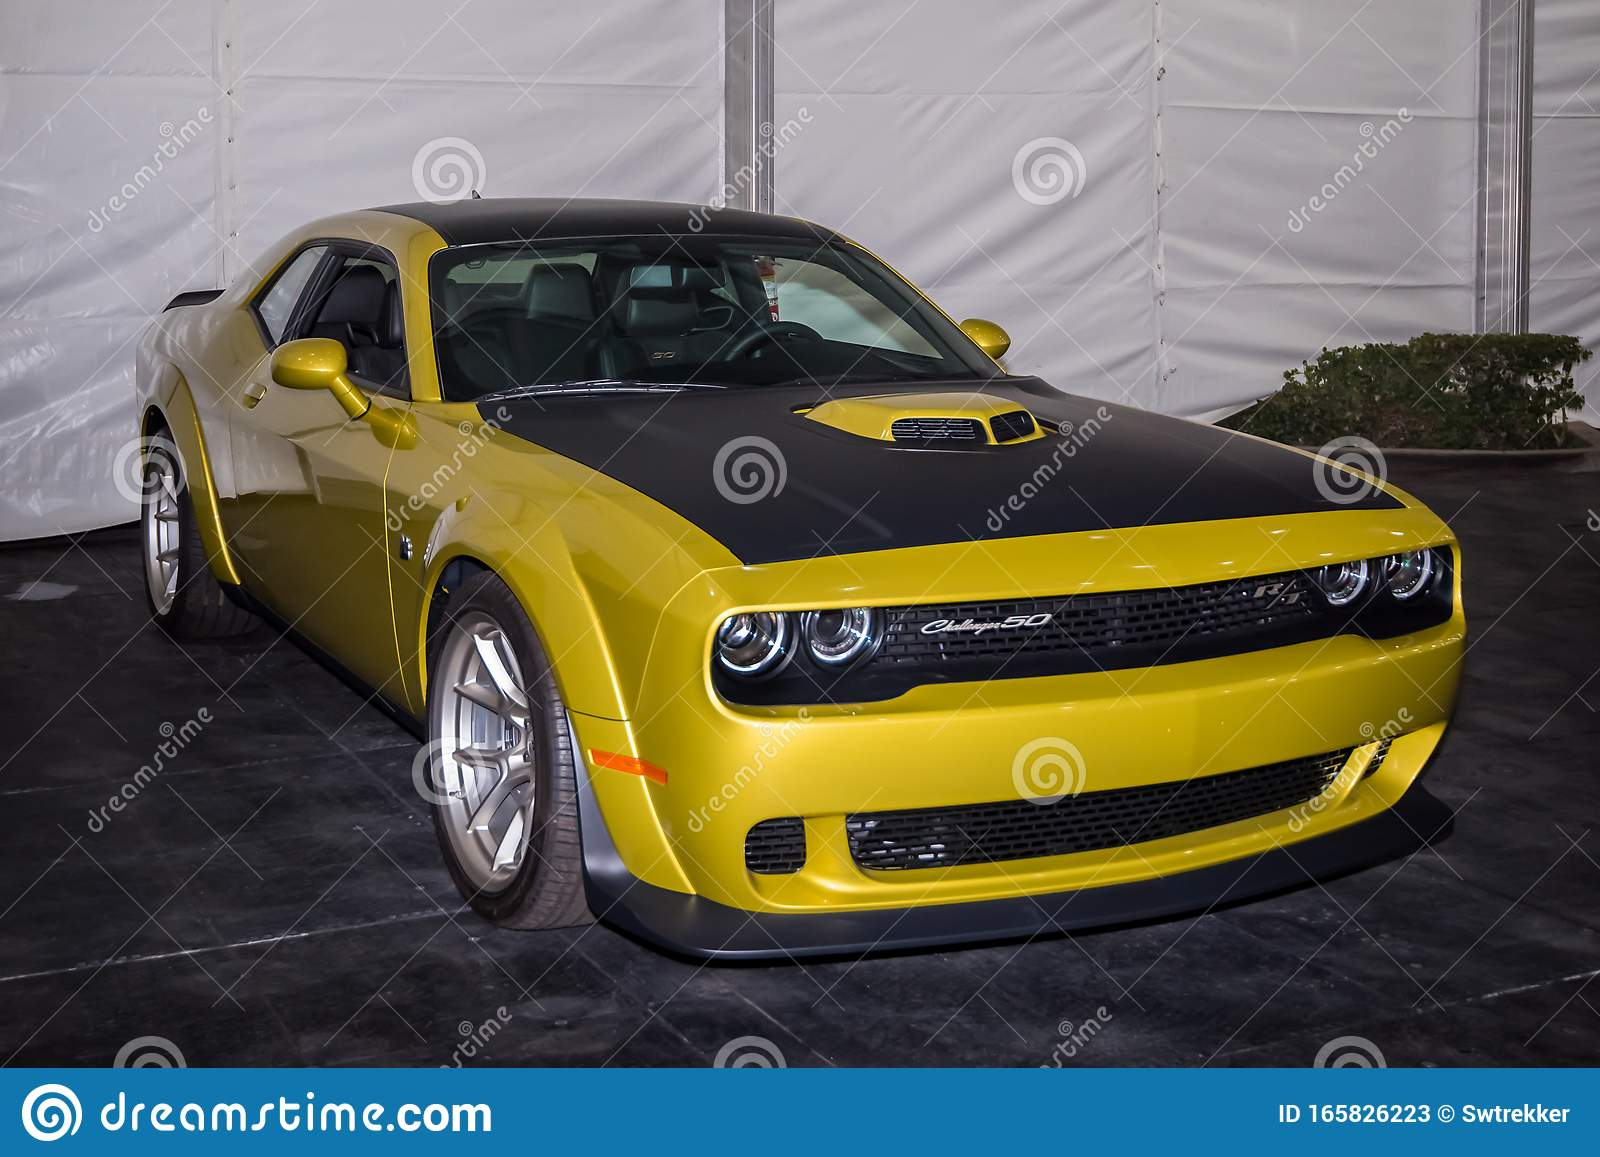 2020 Dodge Challenger 50th Anniversary Edition Editorial Stock Photo Image Of Indoor Angeles 165826223